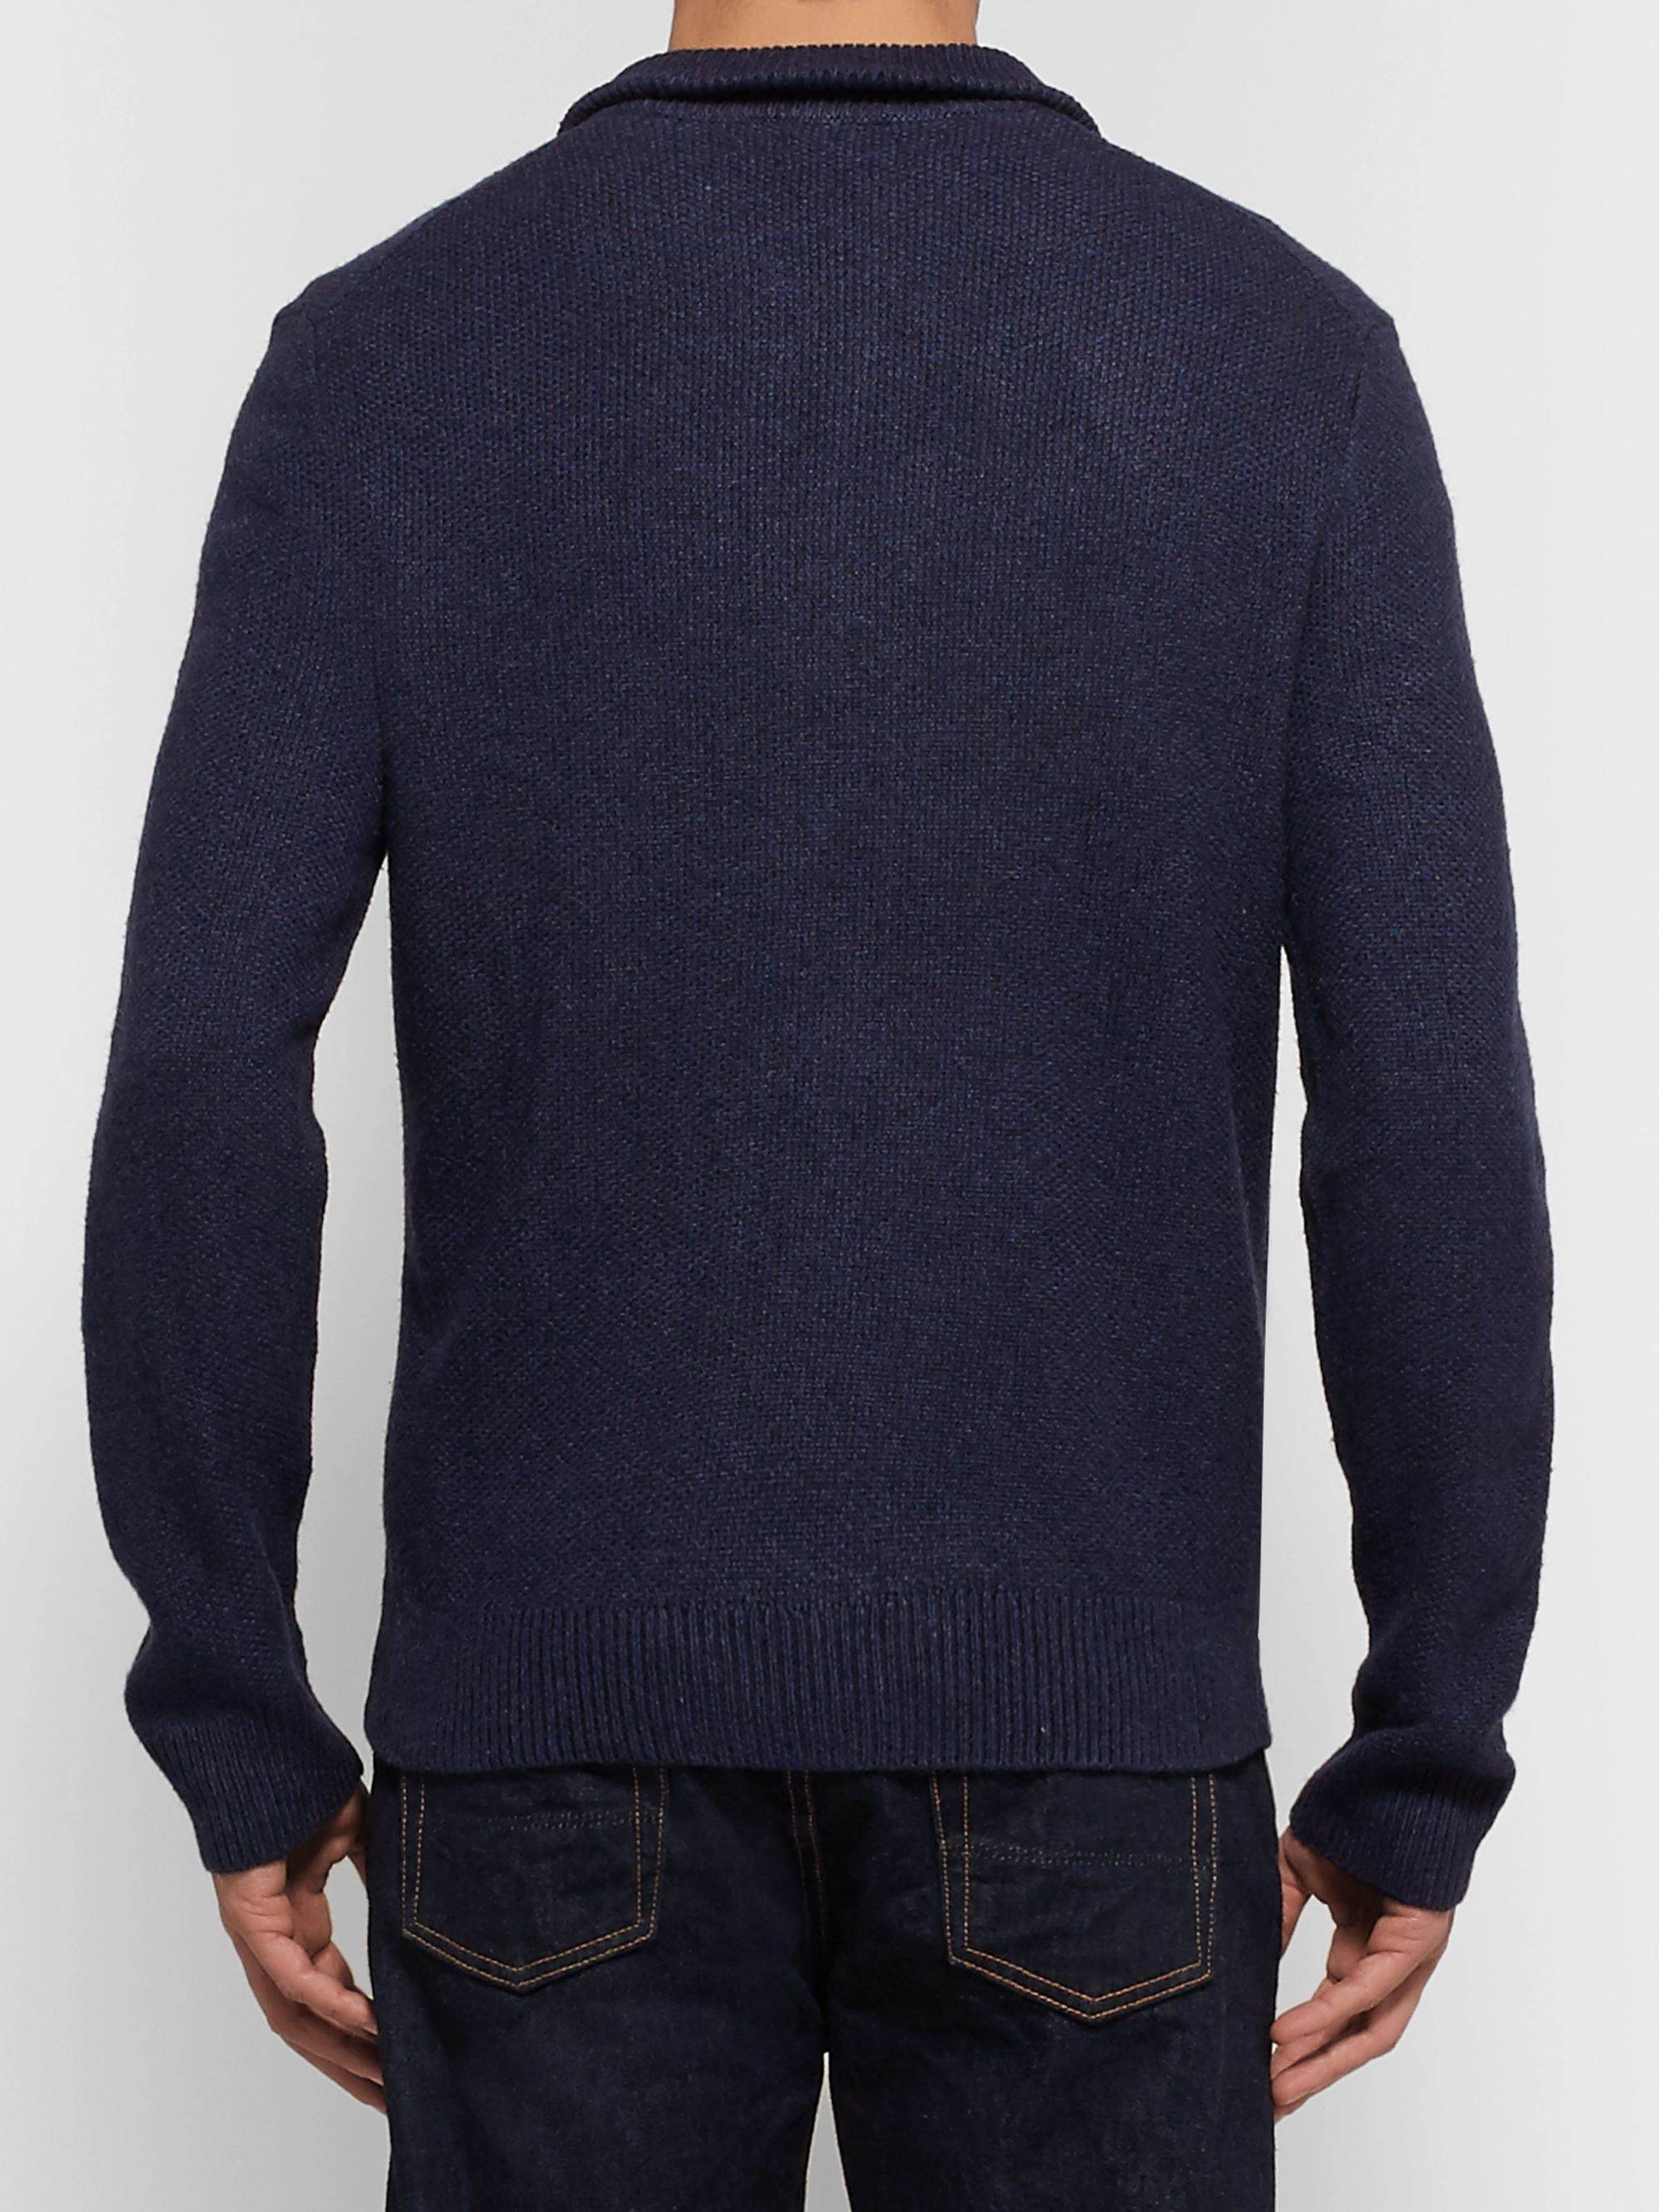 Polo Ralph Lauren Mélange Tussah Silk Half-Zip Sweater